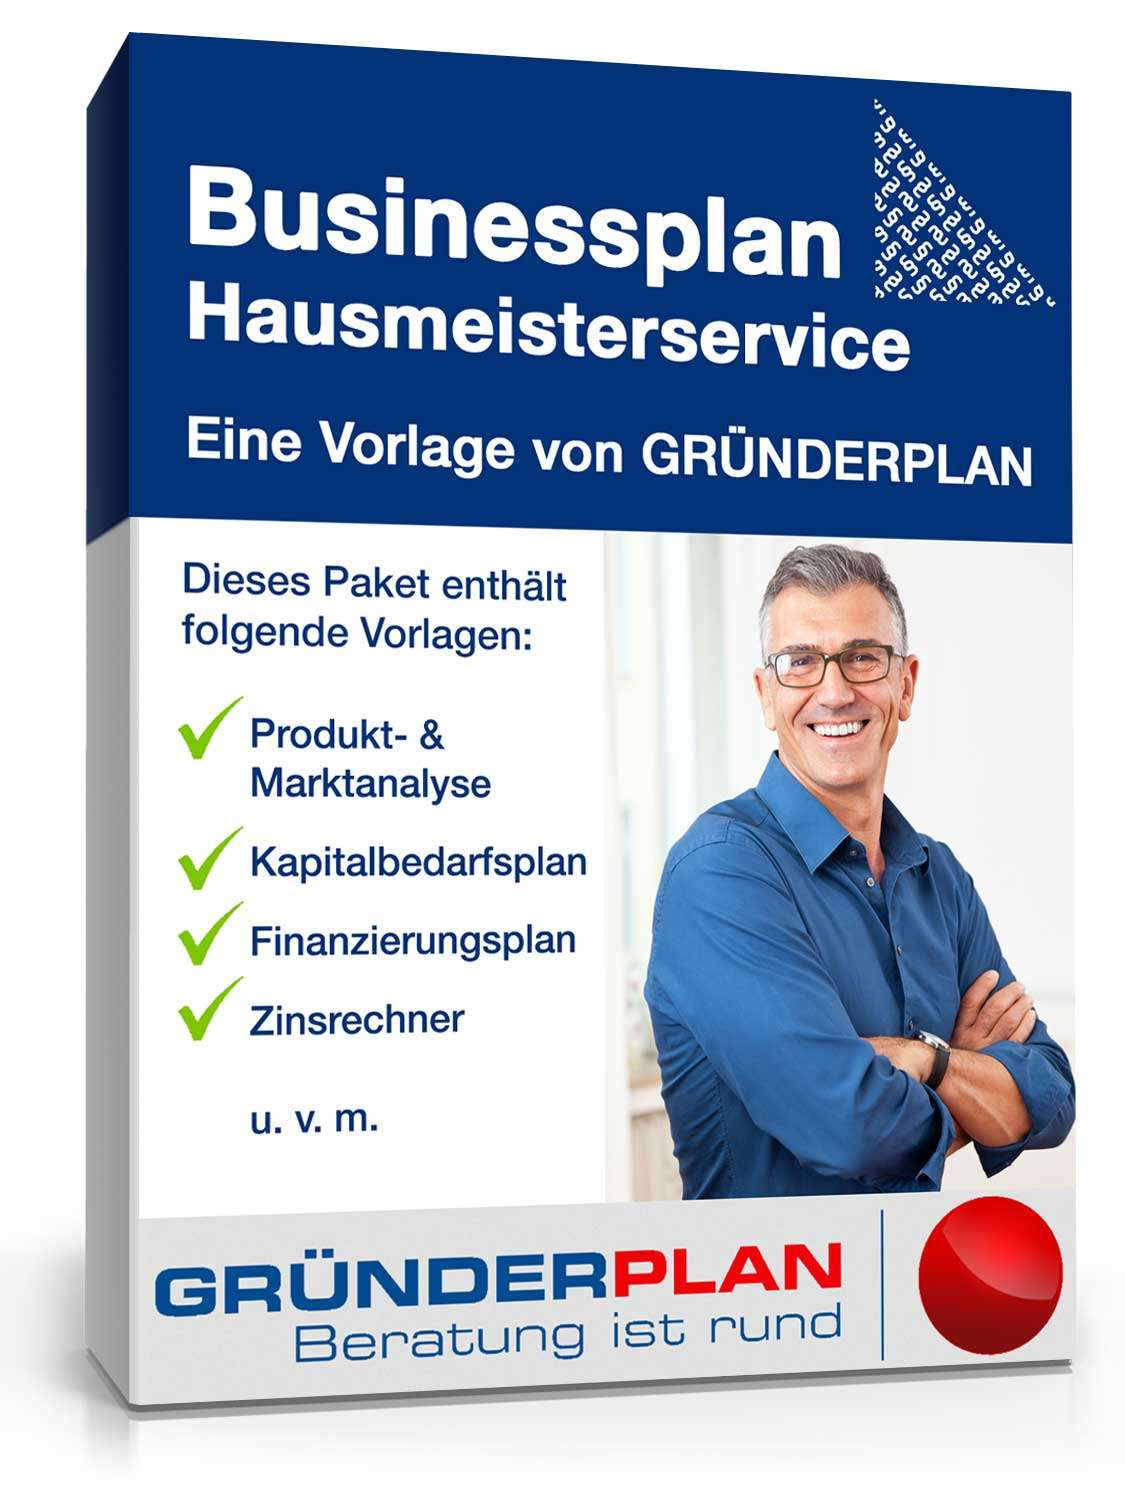 Preisgestaltung business plan